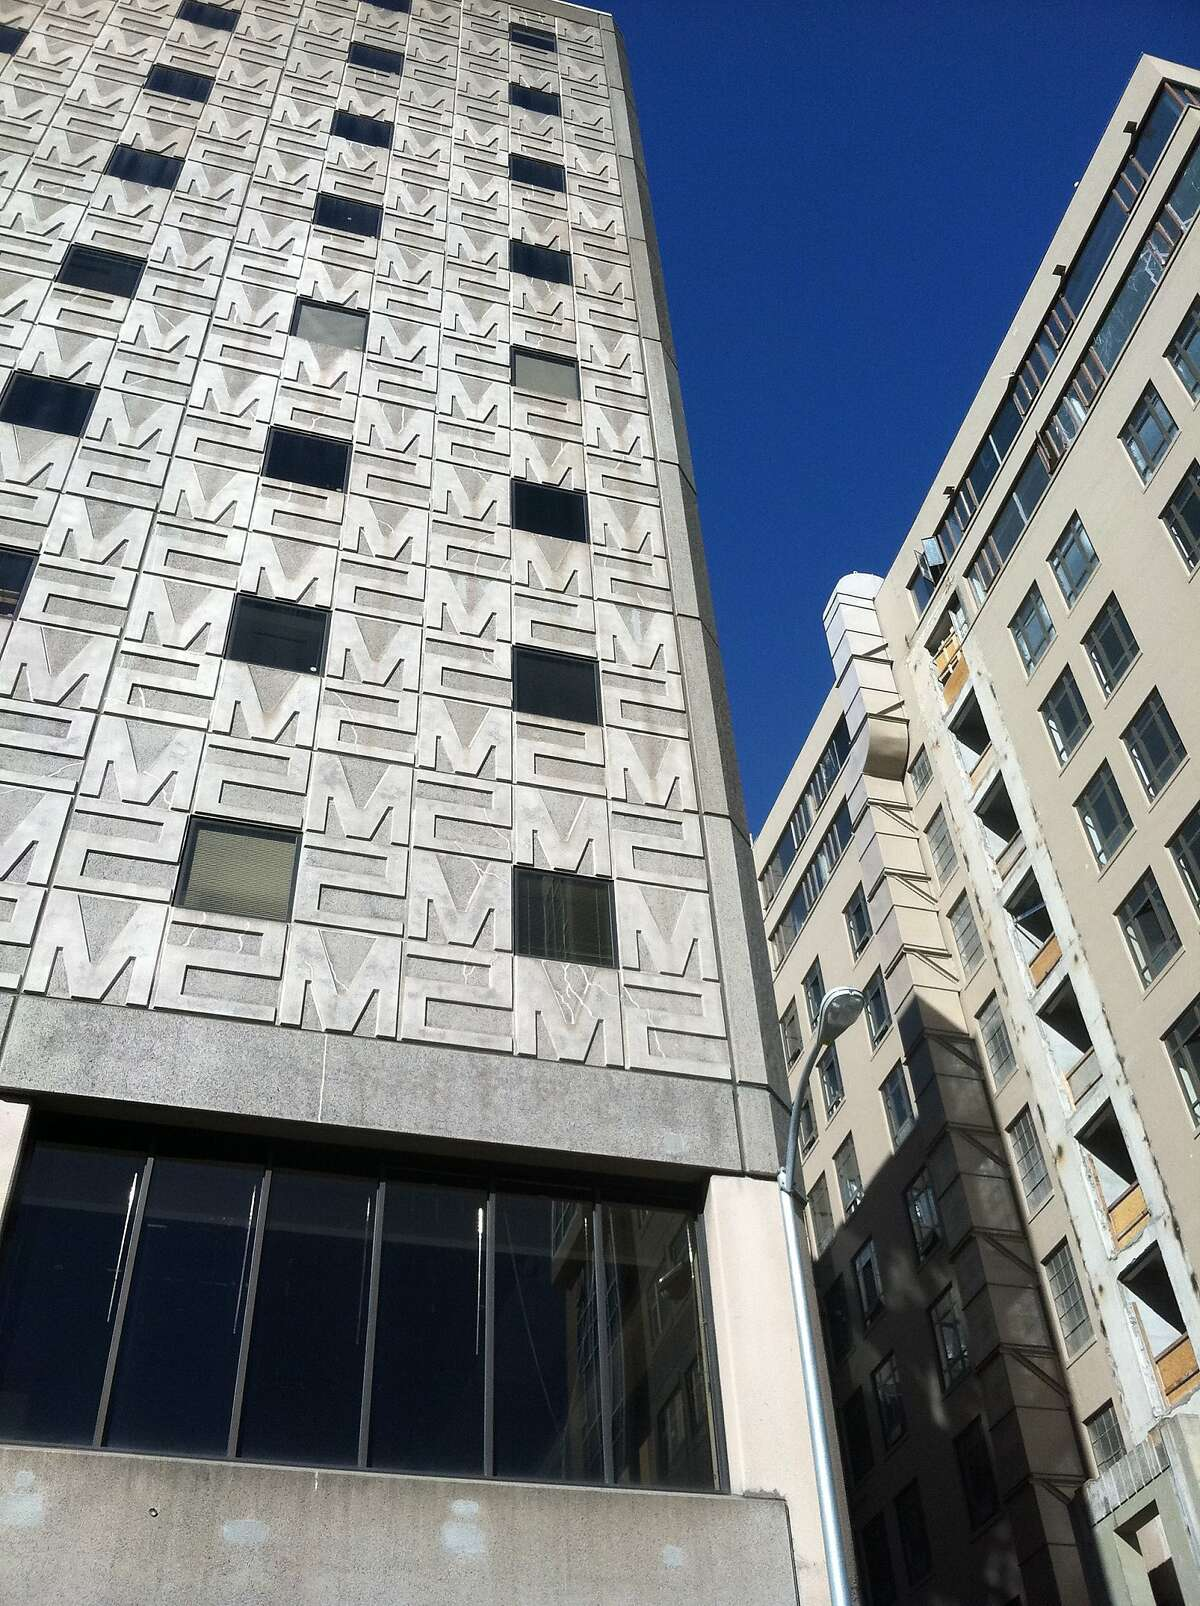 Now in the process of being named 1 10th Street, with a new glass skin, the 1970s addition to the Merchandise Mart was of note mainly for its small windows and logo'd M2 panels.